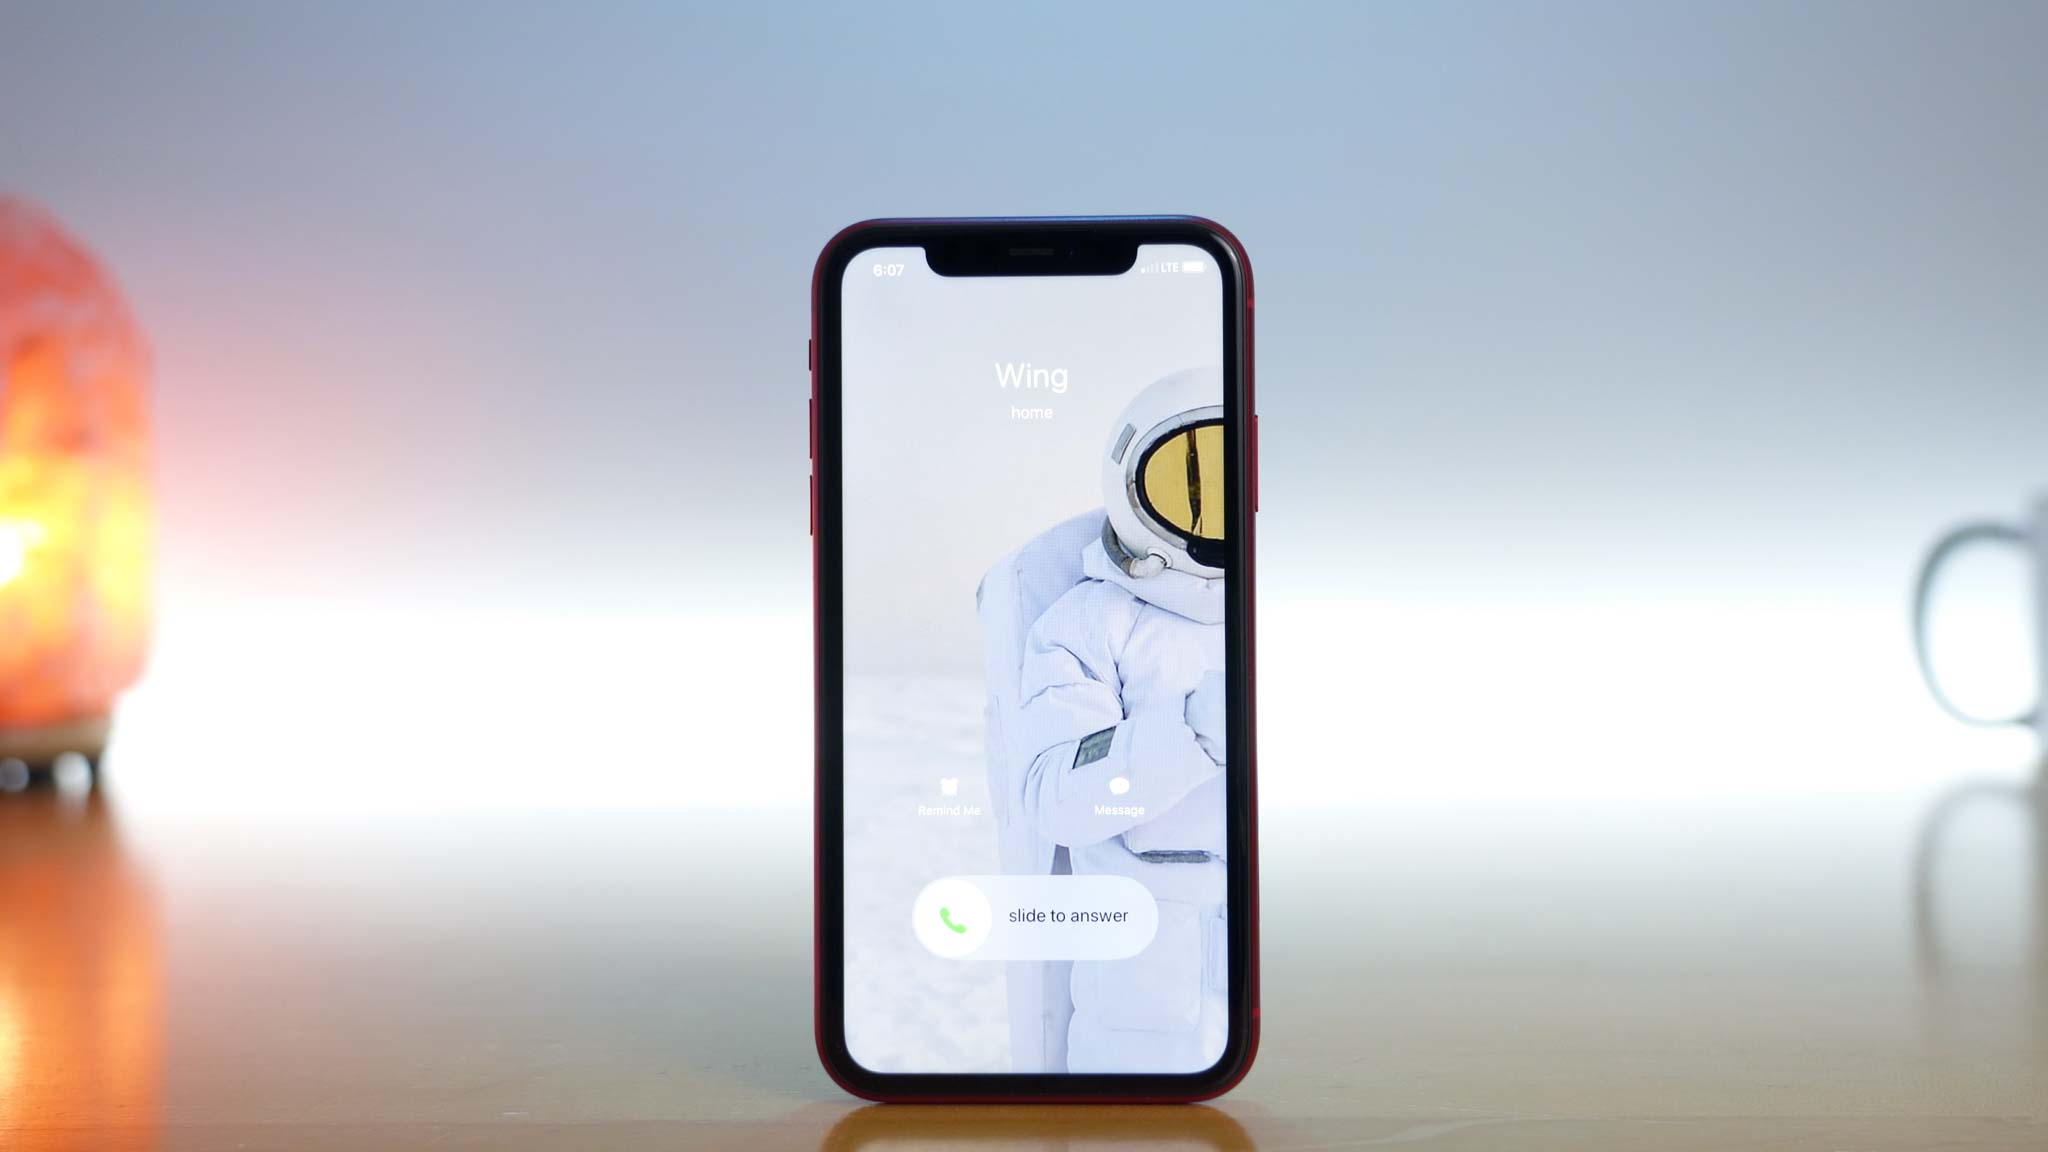 photo of iPhone 11 Pro receiving a call from contact named Wing with an astronaut profile picture